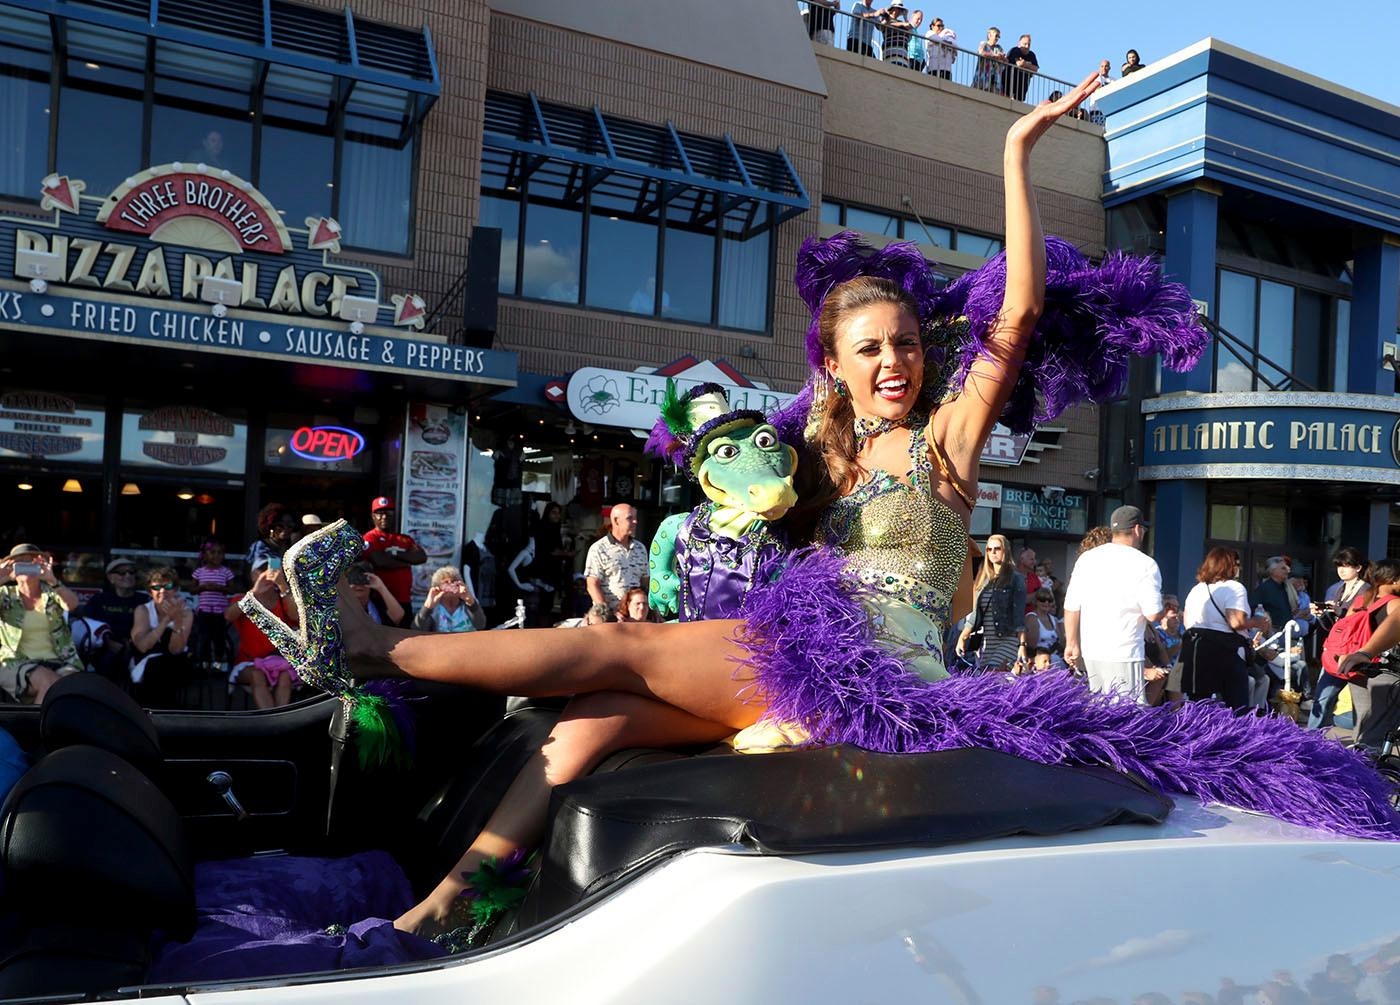 Miss Louisiana 2017 Laryssa Bonacquisti show the crowd her shoe during a parade on the Atlantic City, N.J., Boardwalk Saturday, Sept 9, 2017. (Edward Lea/The Press of Atlantic City via AP)